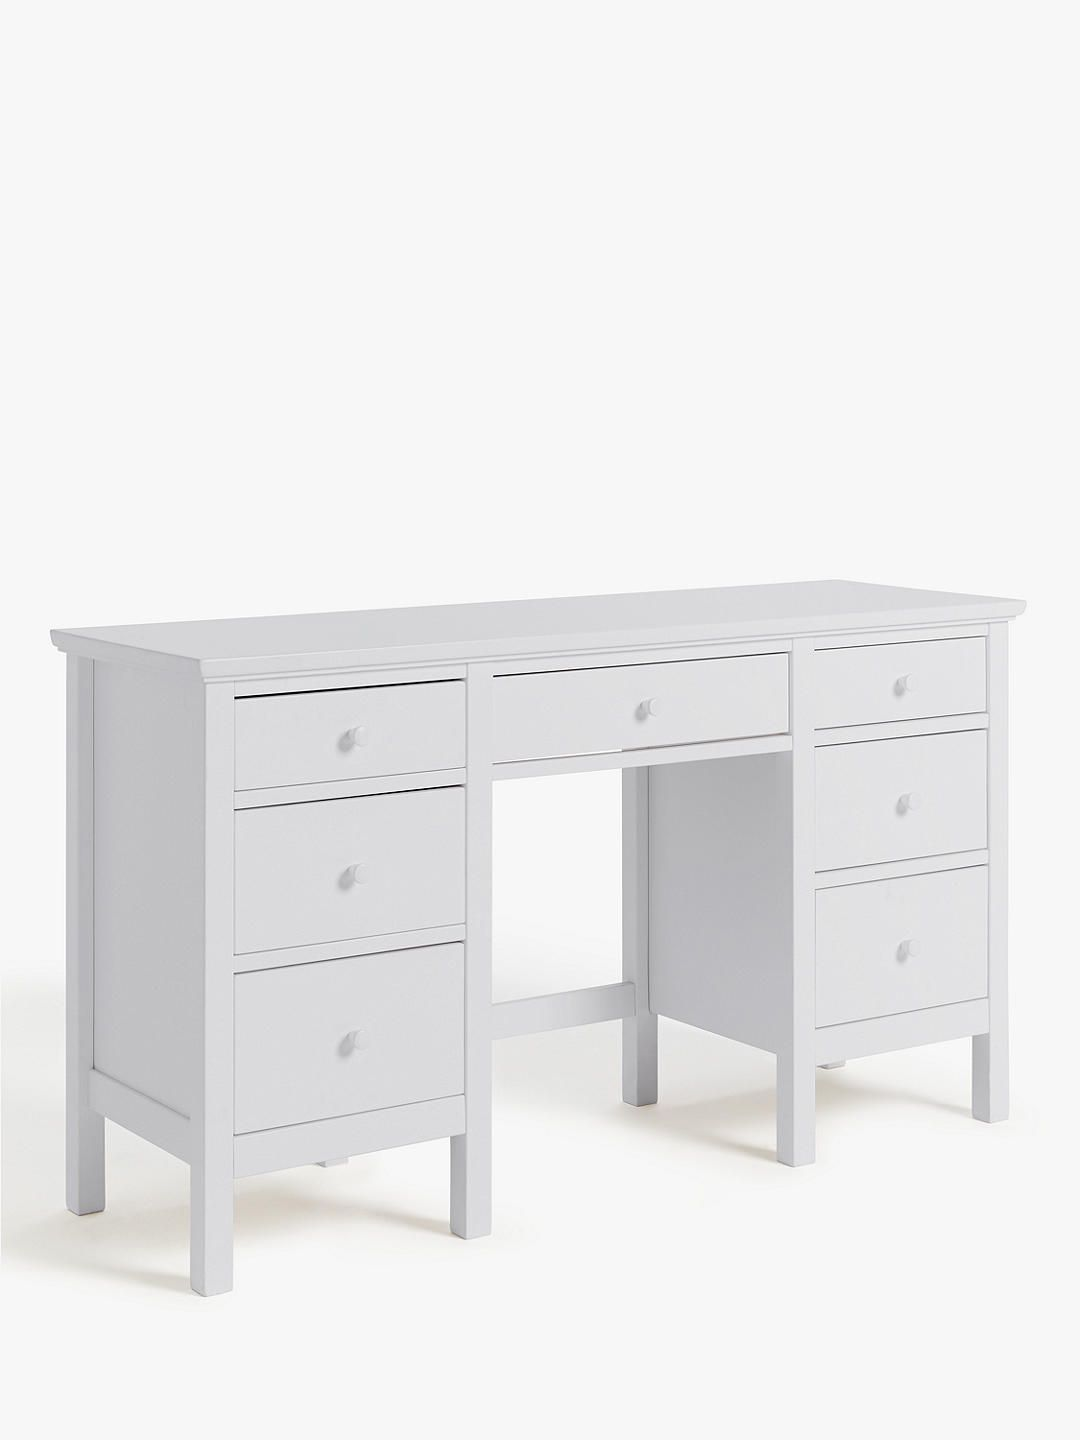 Gainsborough White Dressing Table Very Solid Dressing Table With